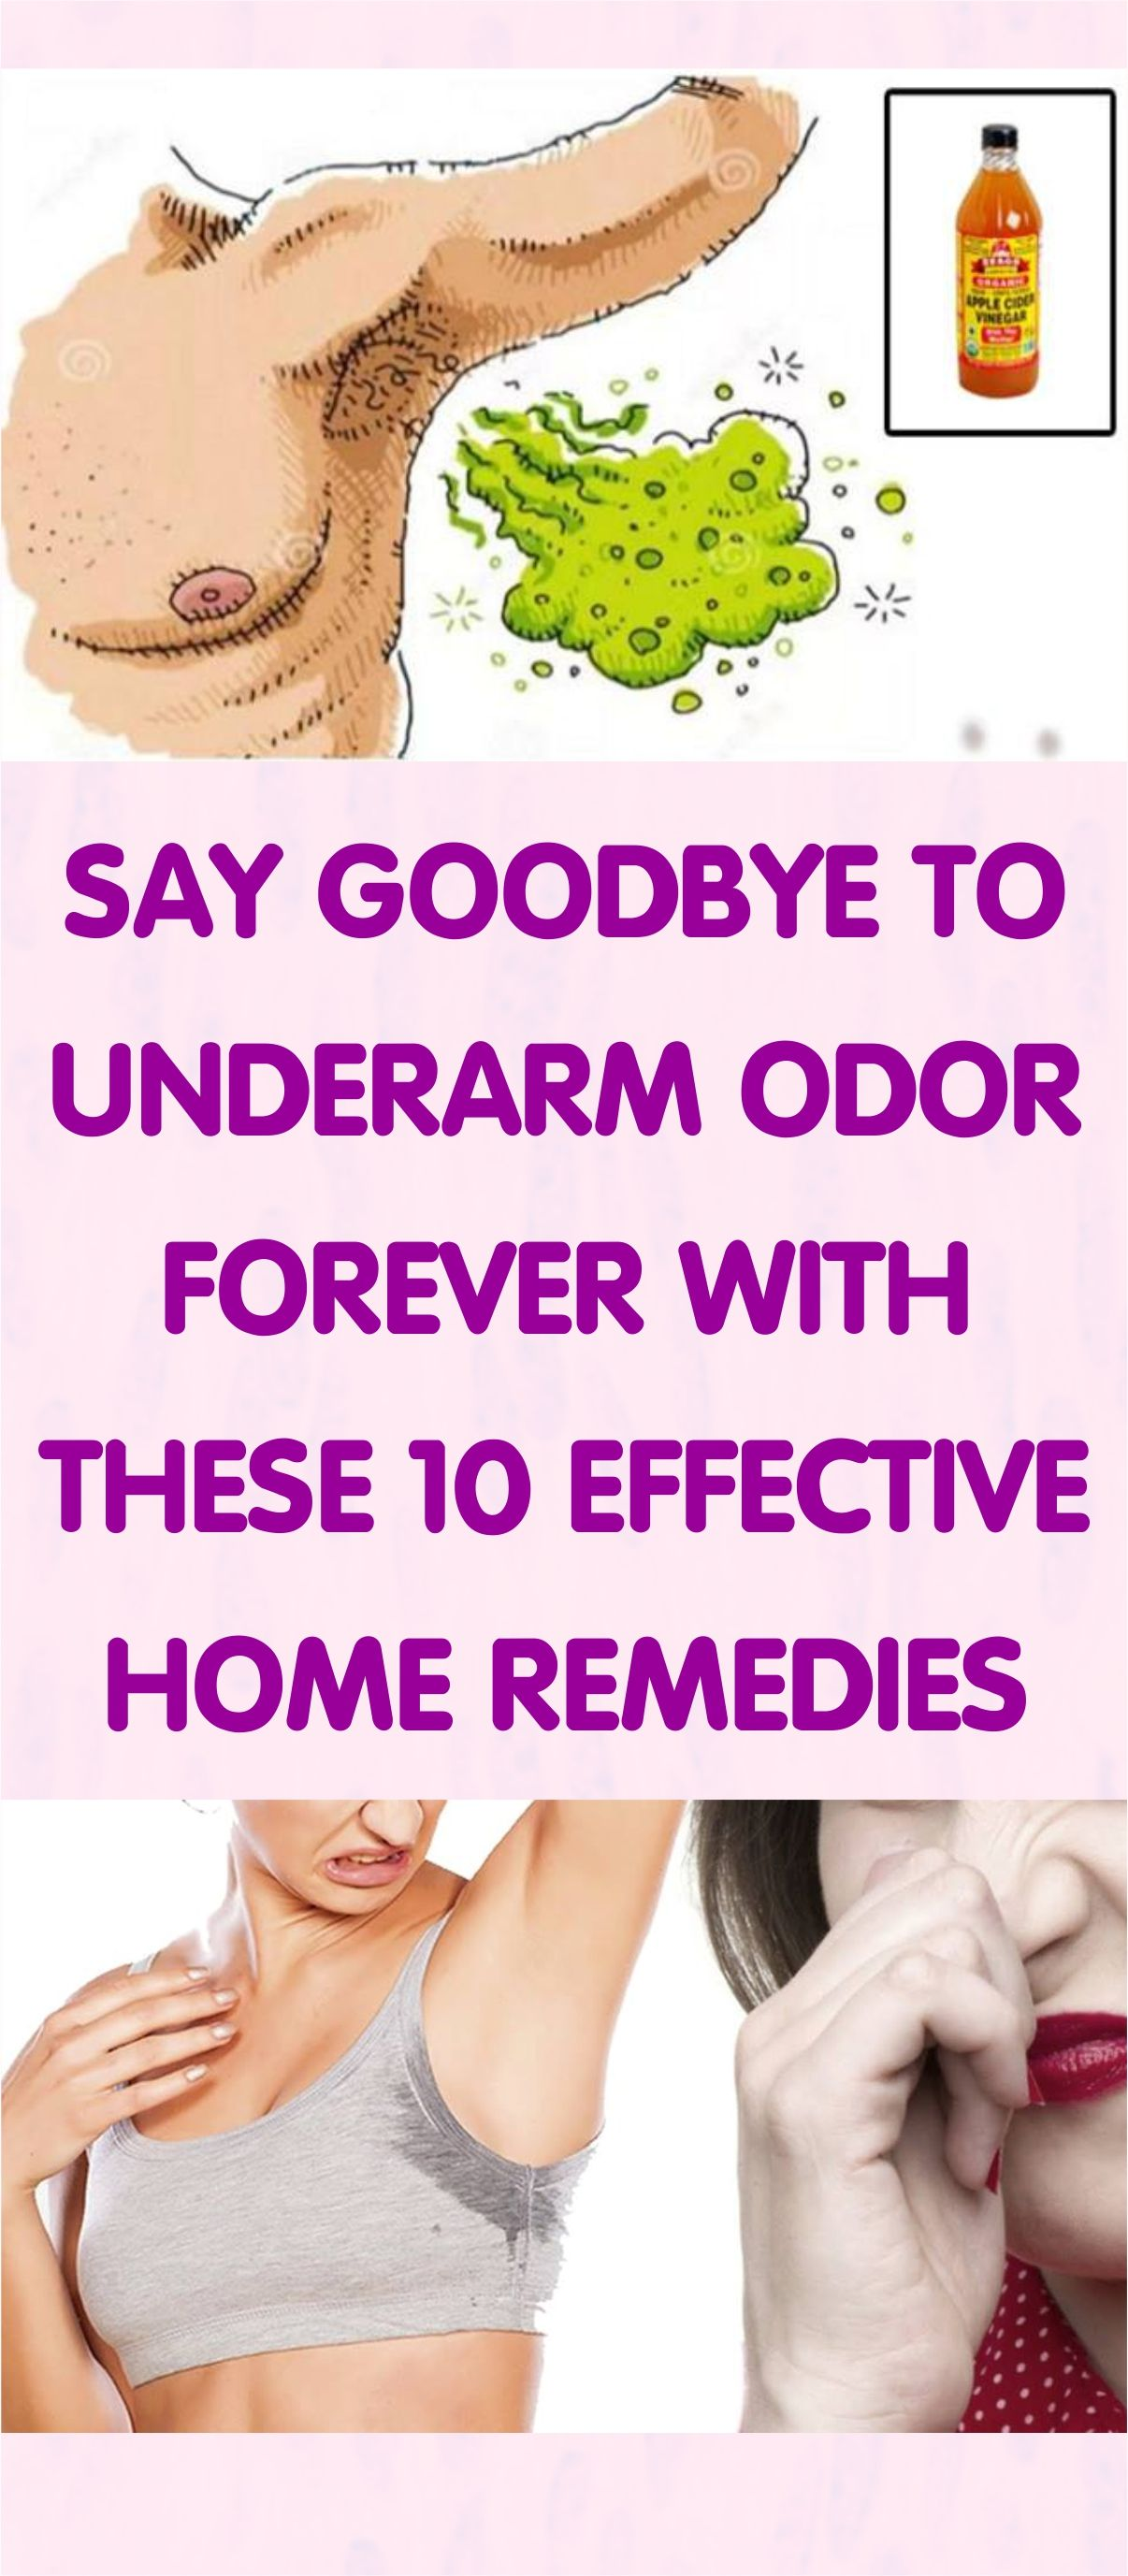 SAY GOODBYE TO UNDERARM ODOR FOREVER WITH THESE 10 EFFECTIVE